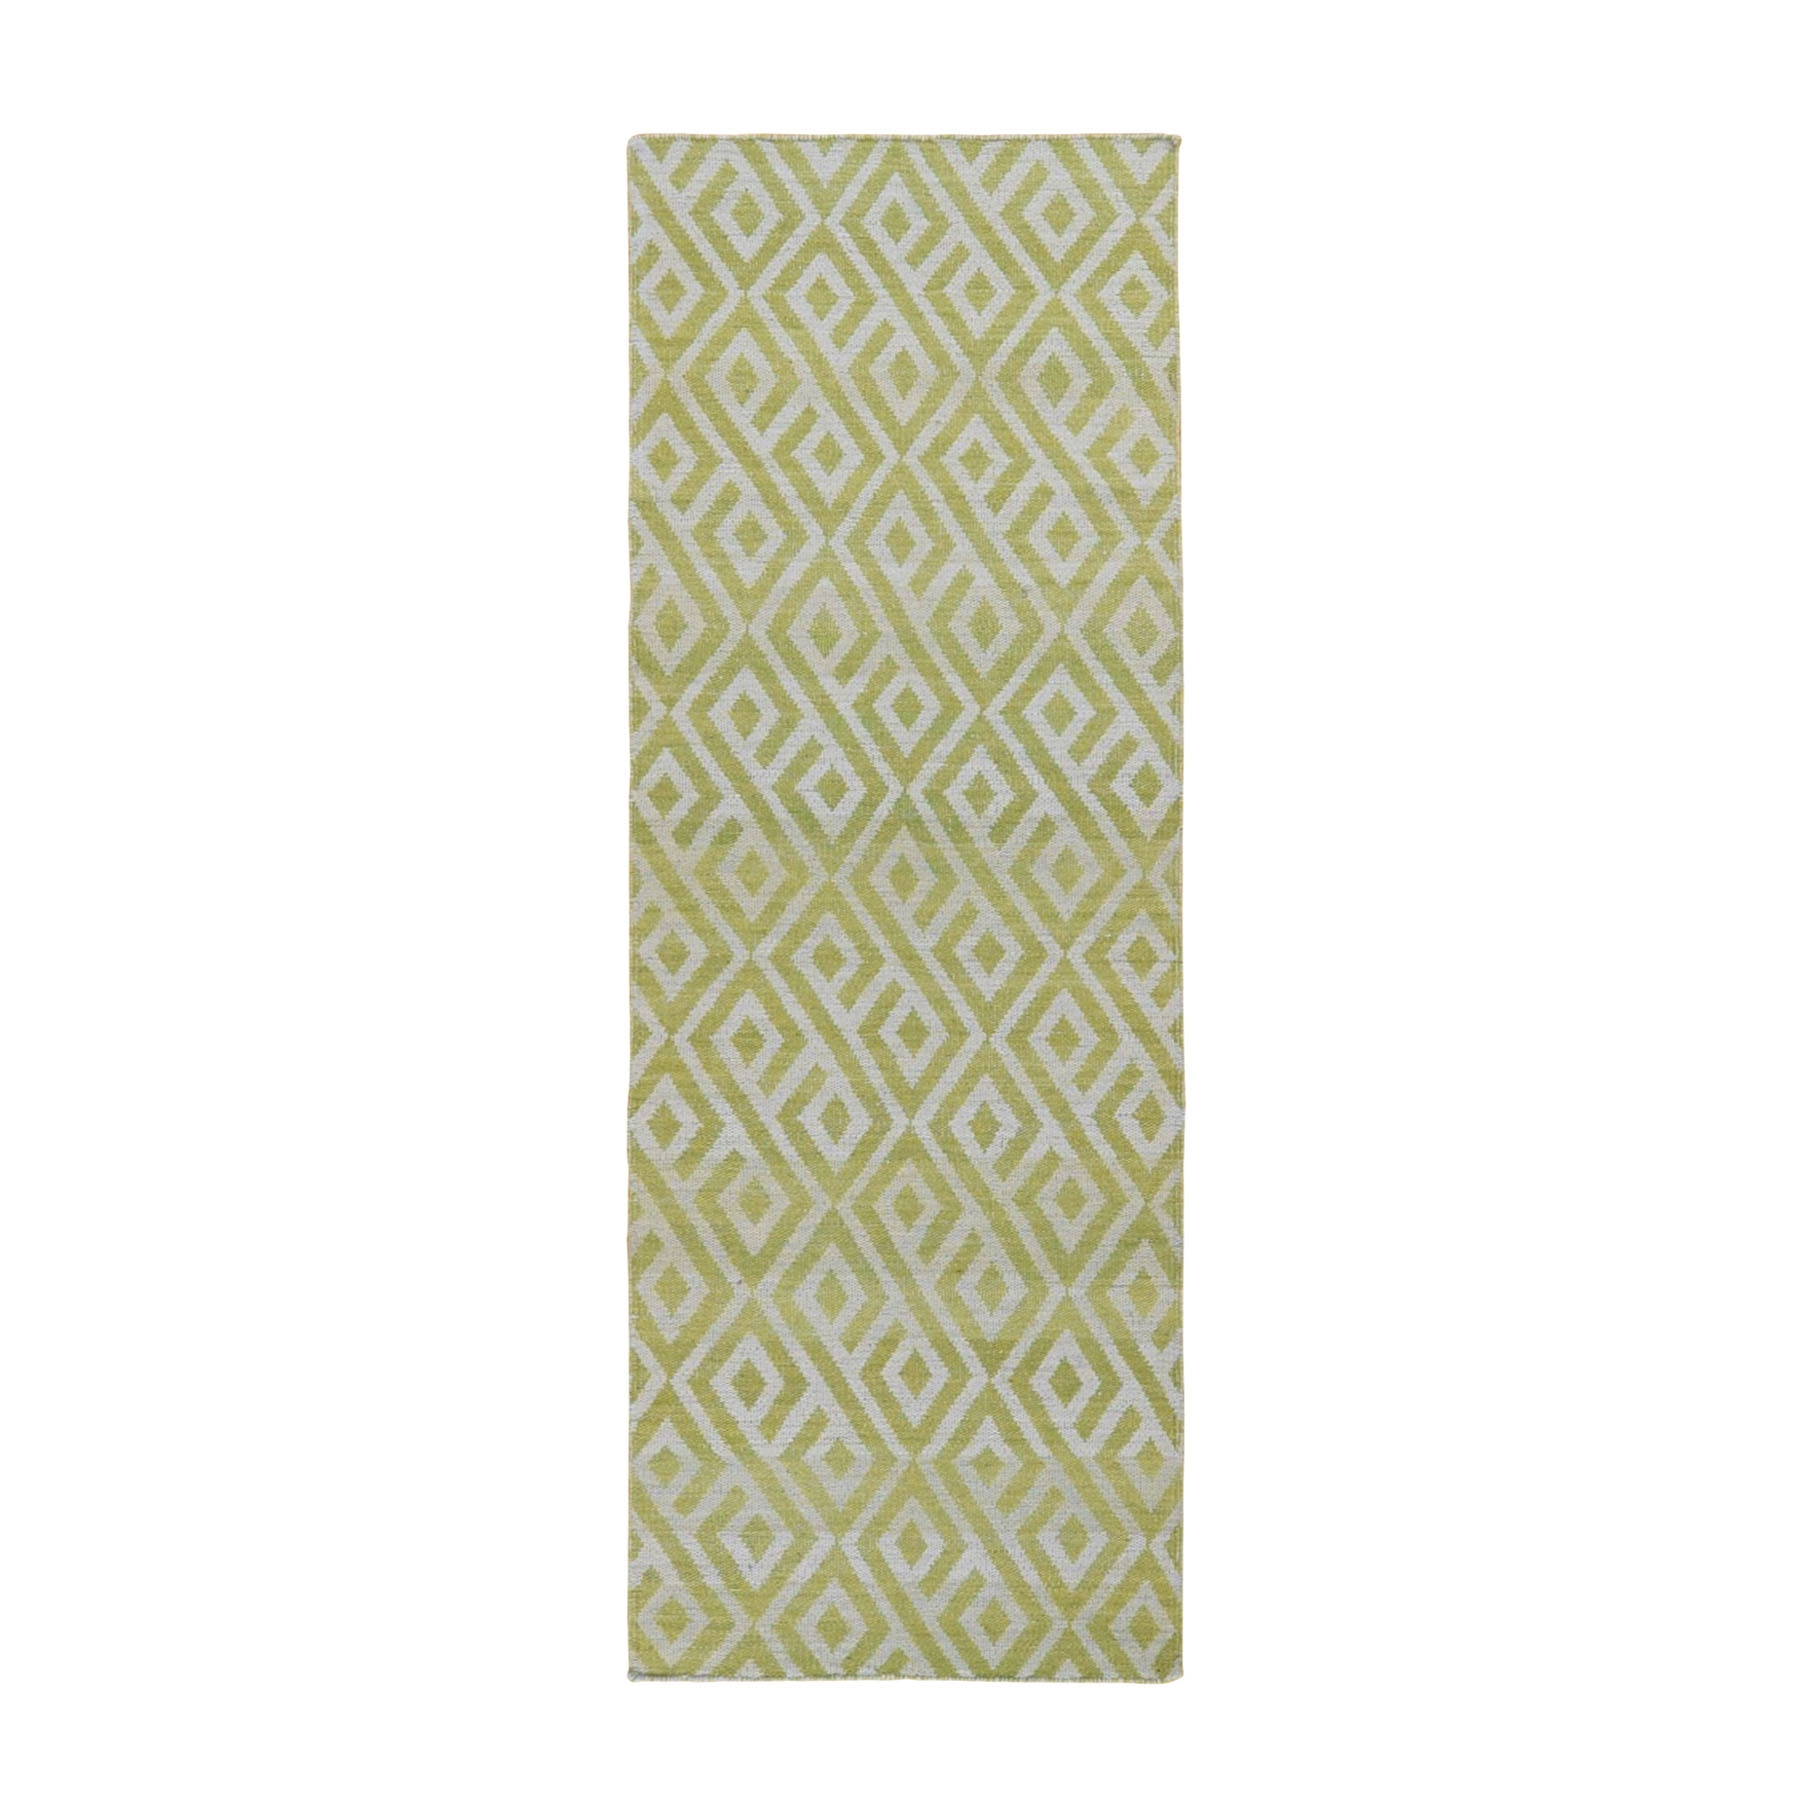 "2'9""x7'10"" Light Green Reversible Runner Hand Woven Killim Flat Weave Rug"